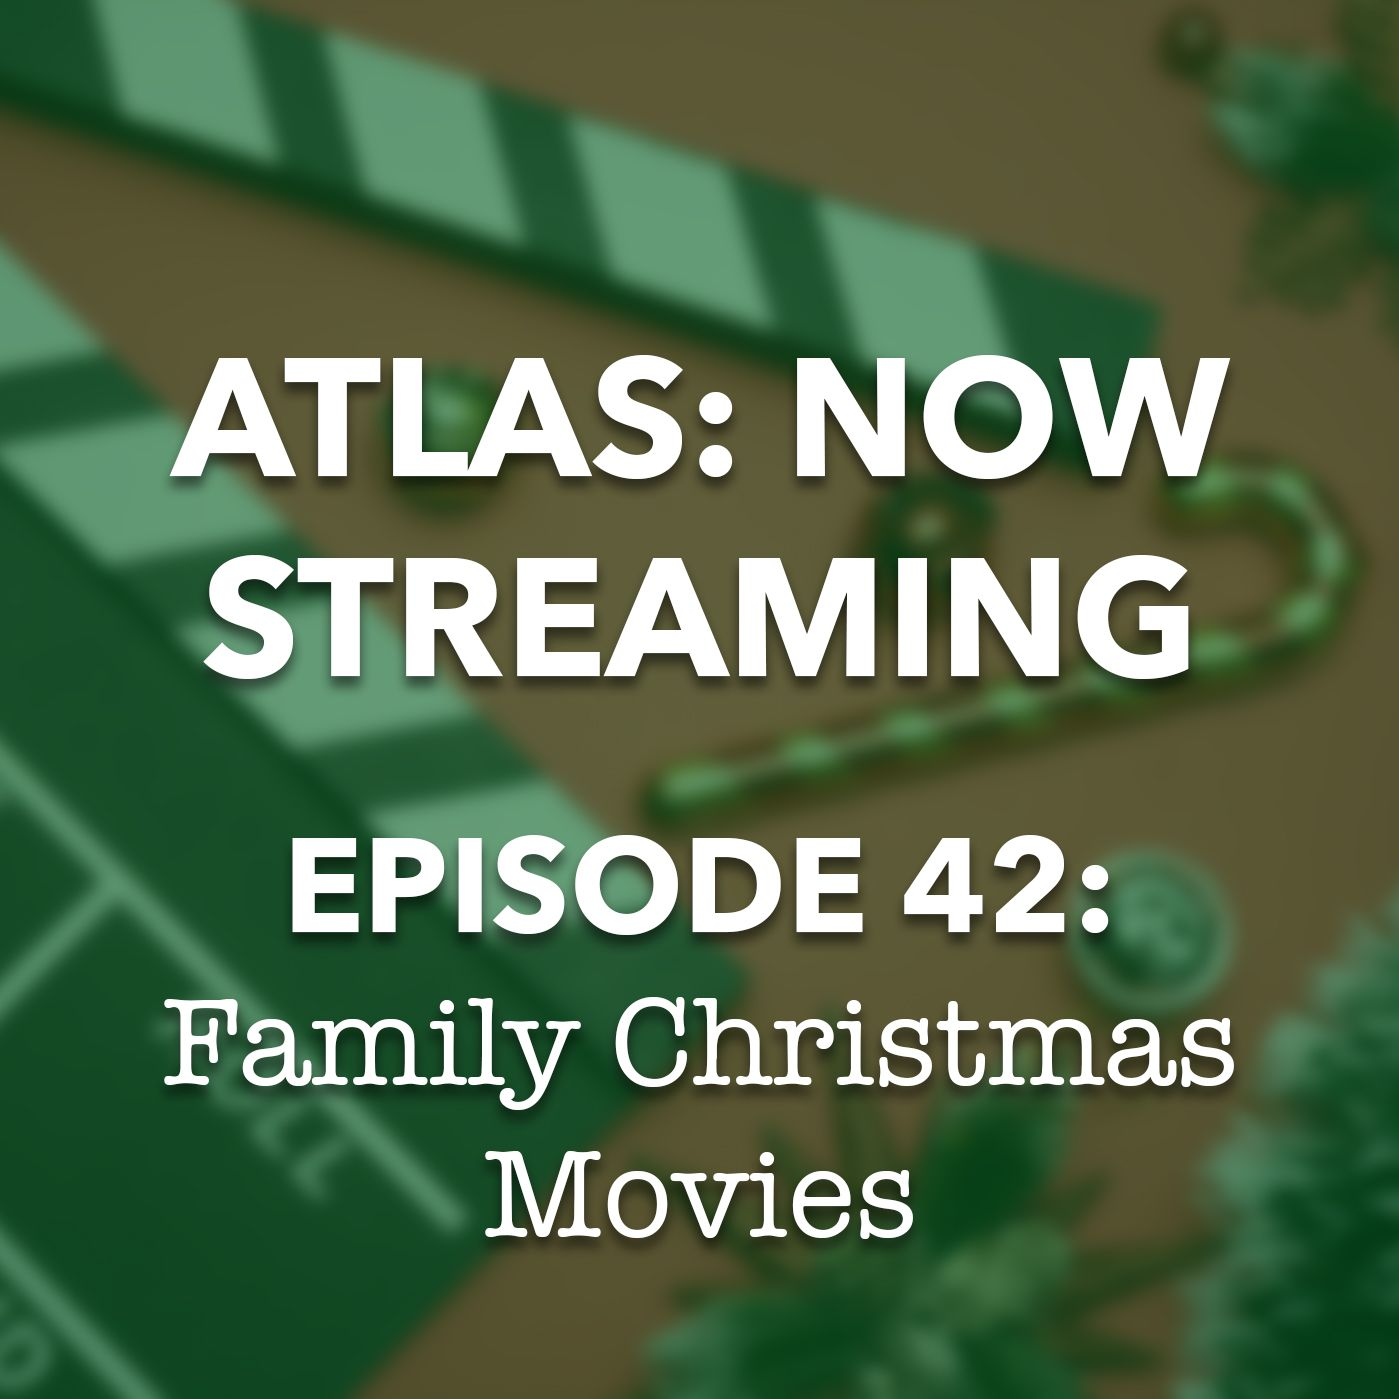 Family Christmas Movies - Atlas: Now Streaming